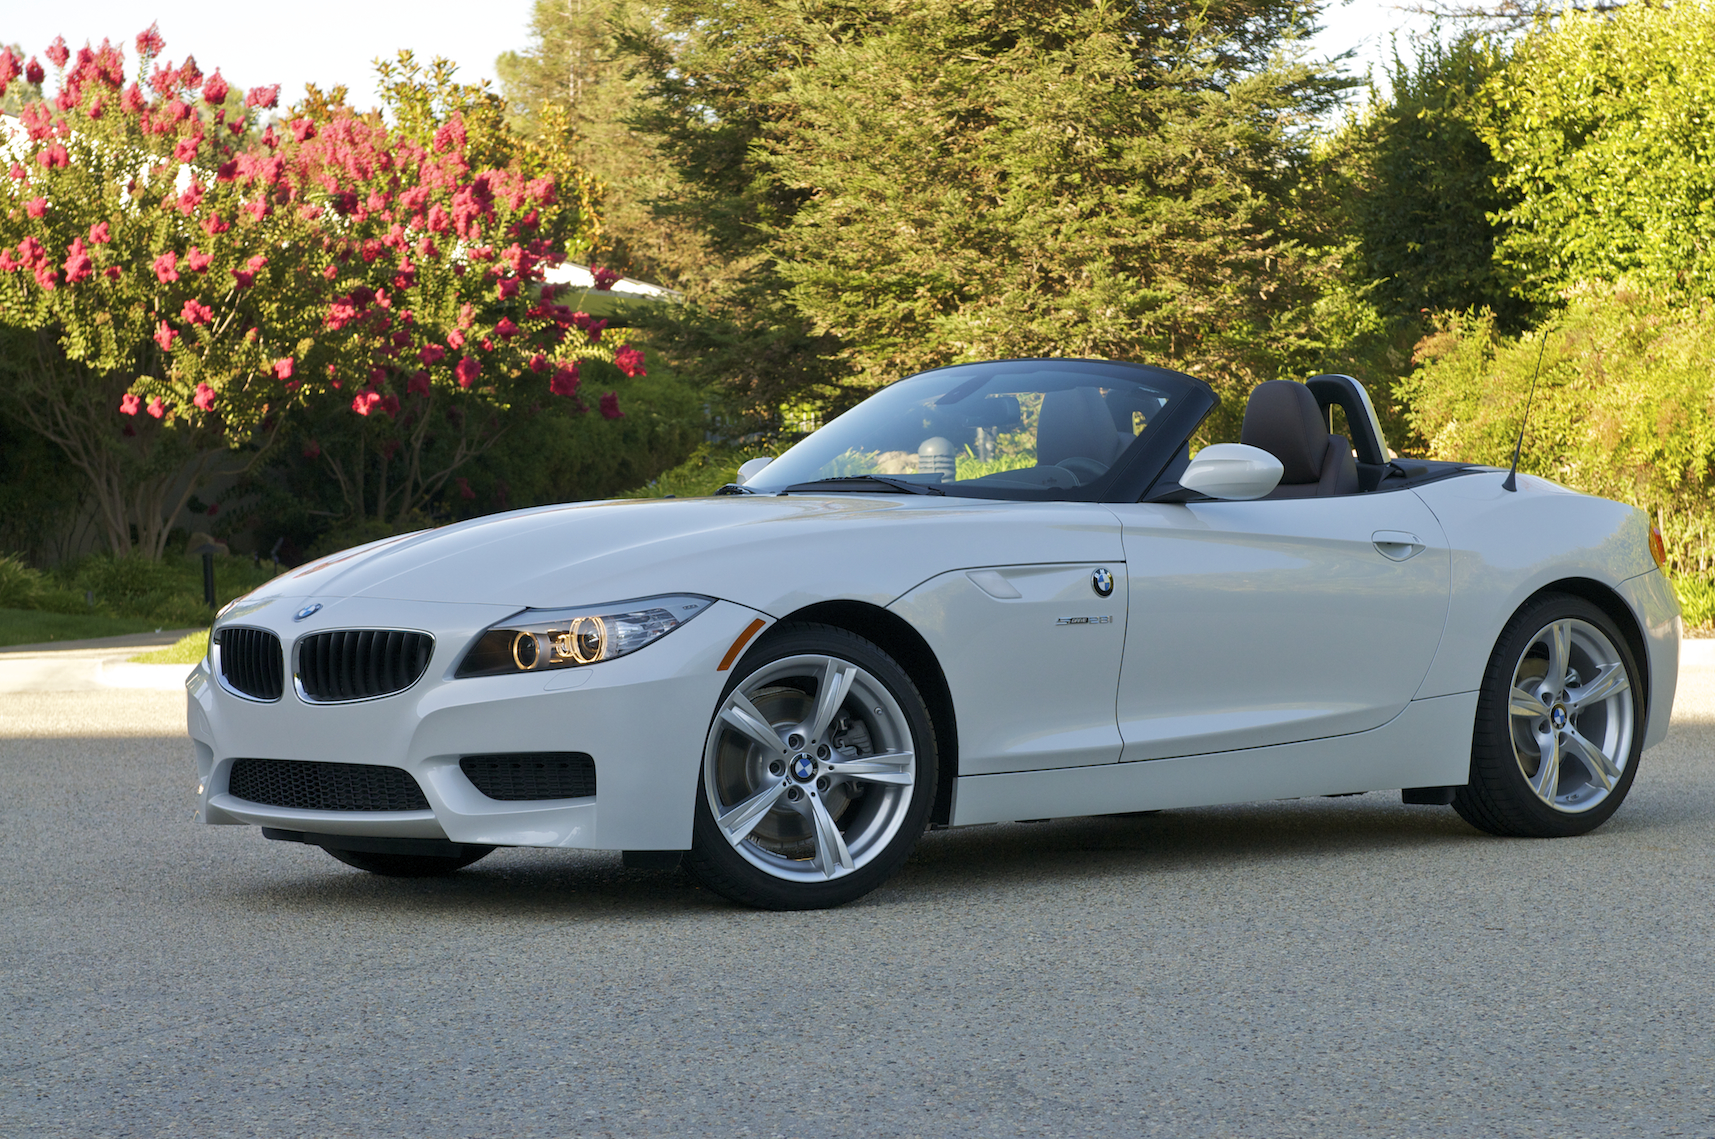 2013 Bmw Z4 Review Ratings Specs Prices And Photos The Car Connection